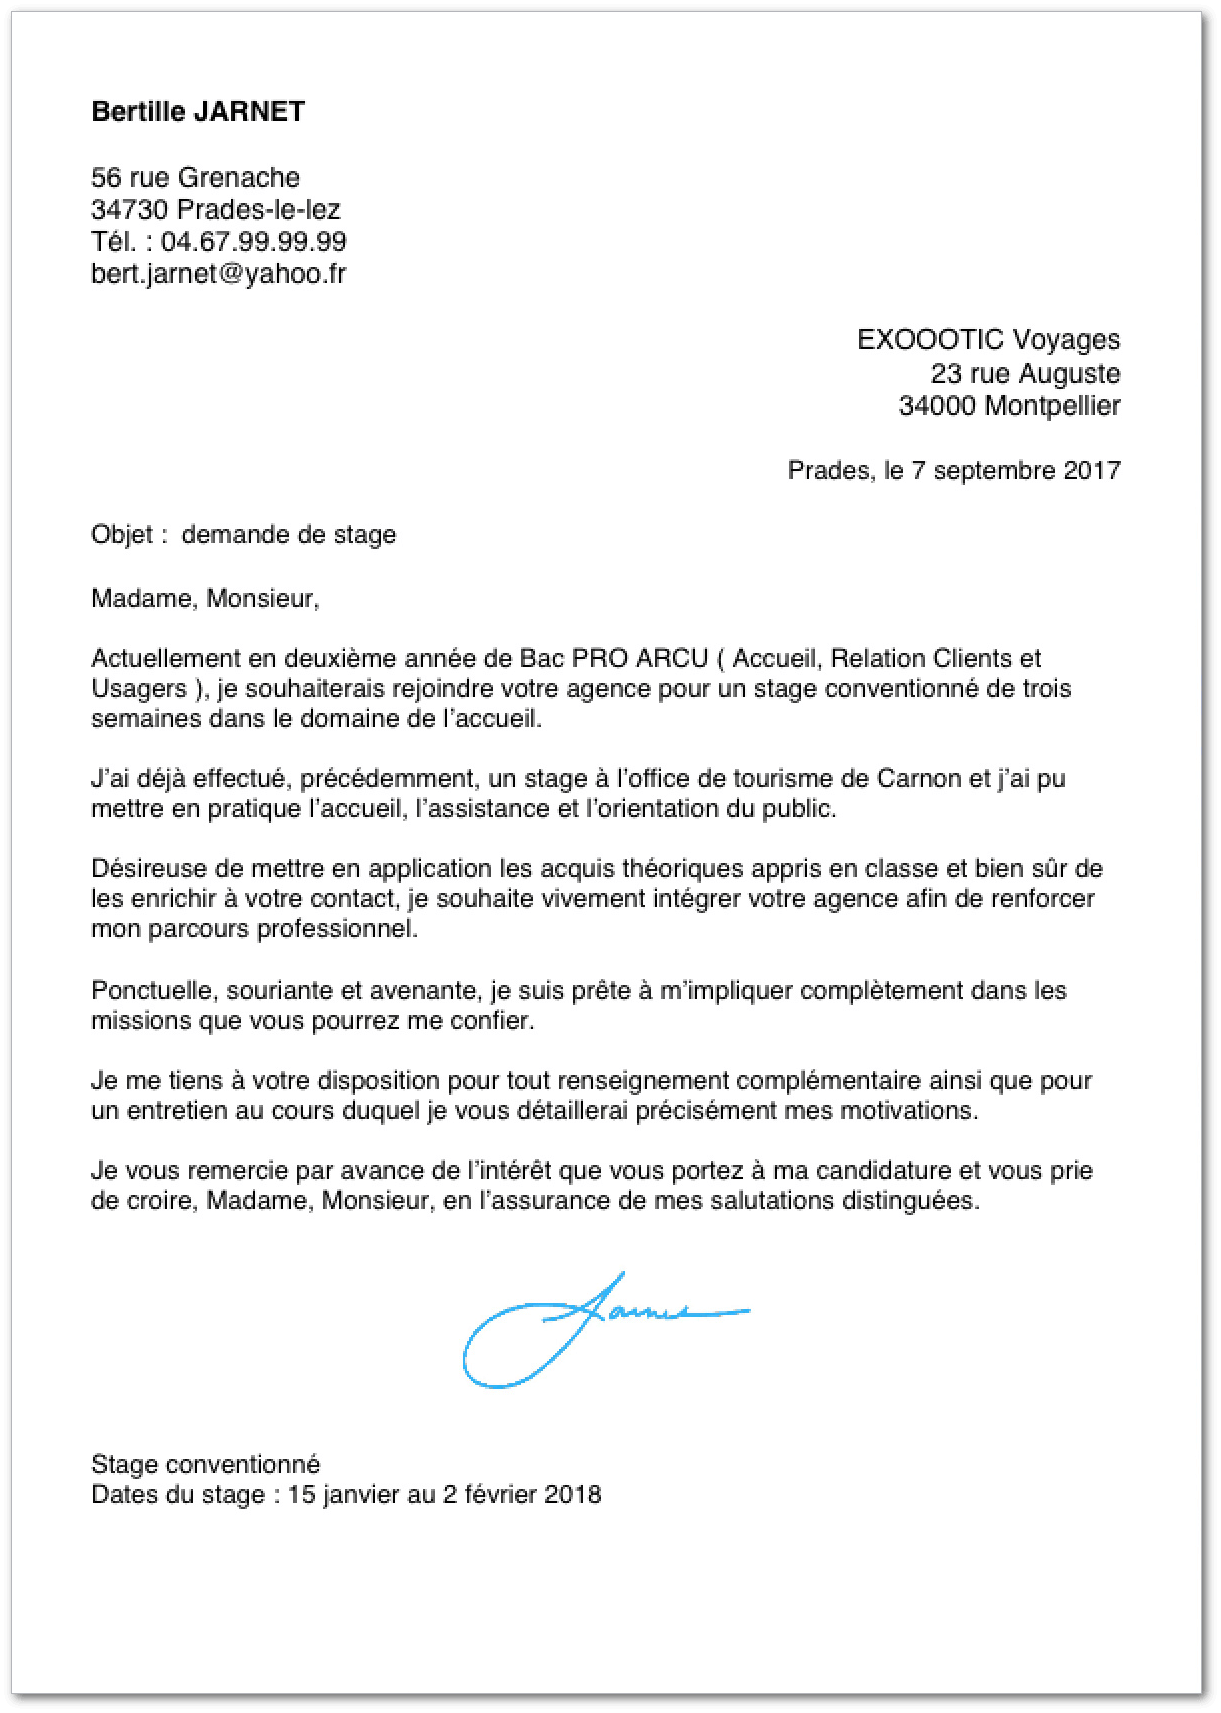 Exemple de lettre de motivation pour un stage en bac pro